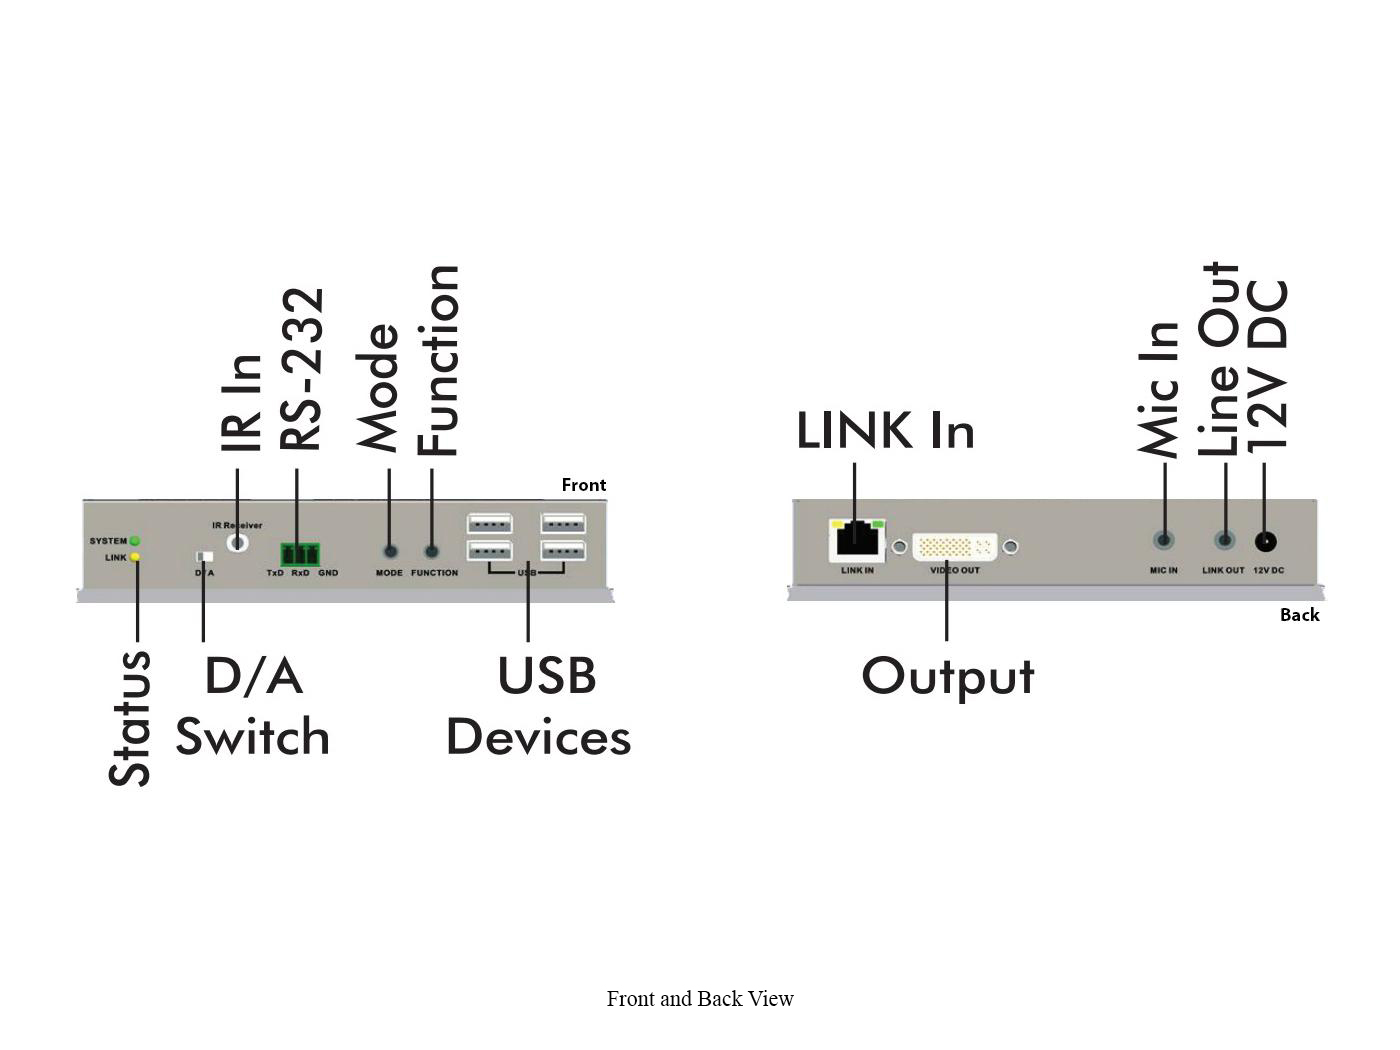 Apantac KVM-IP-Rx HDMI/DVI/VGA(DVI-I connector)/USB KVM Extender (Receiver) over Gigabit Ethernet LAN